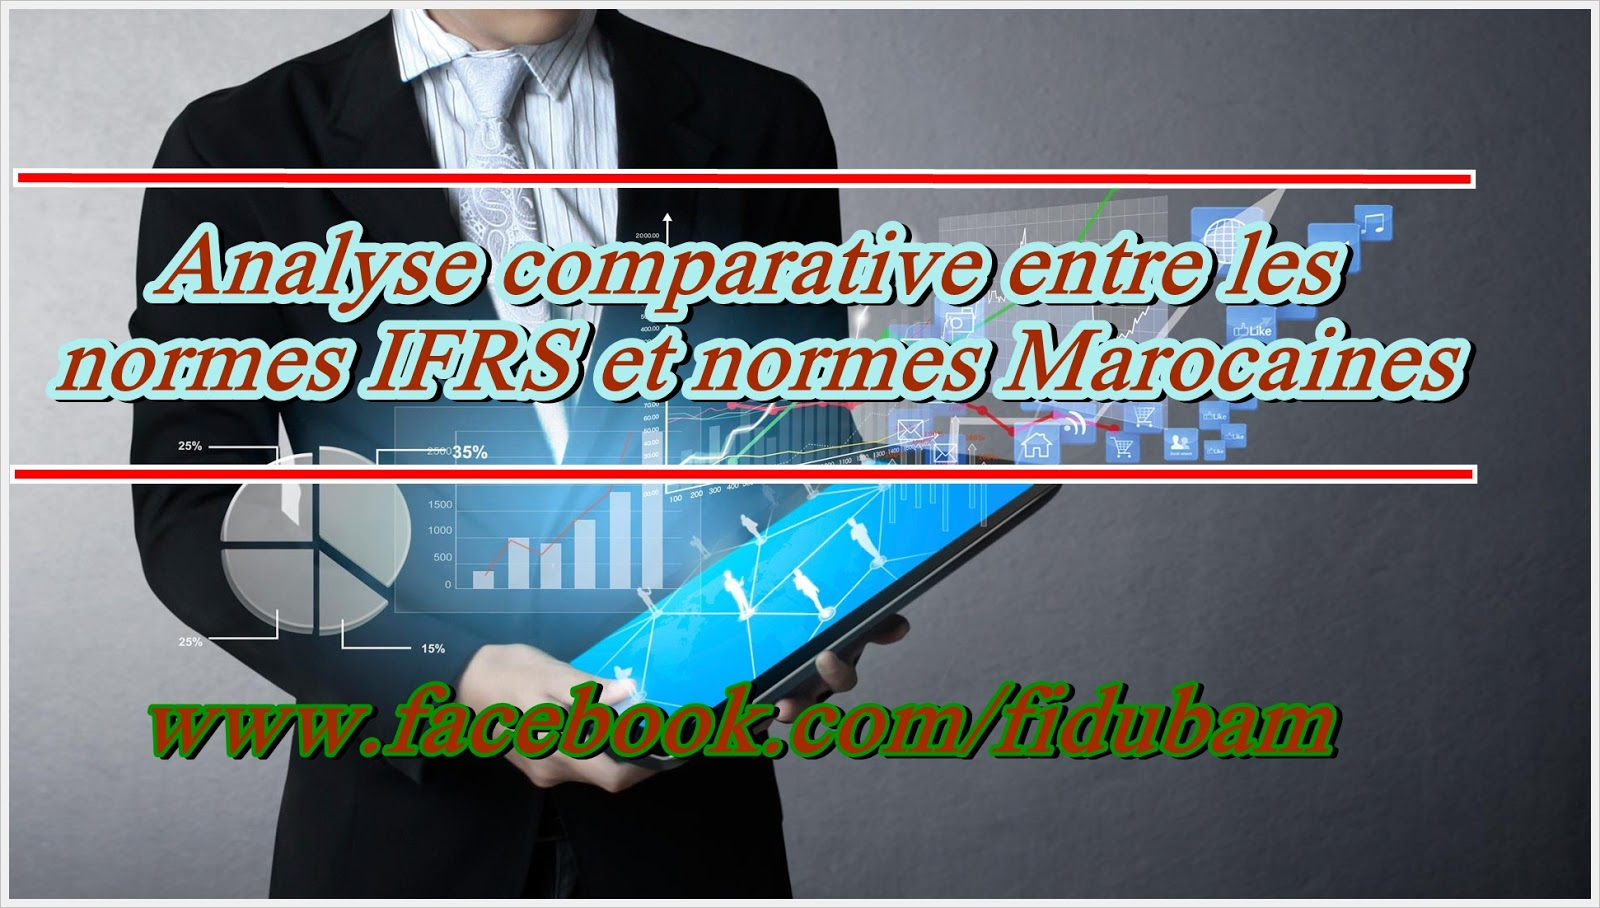 cc - Fichier PDF : Analyse comparative entre les normes IFRS normes Marocaines